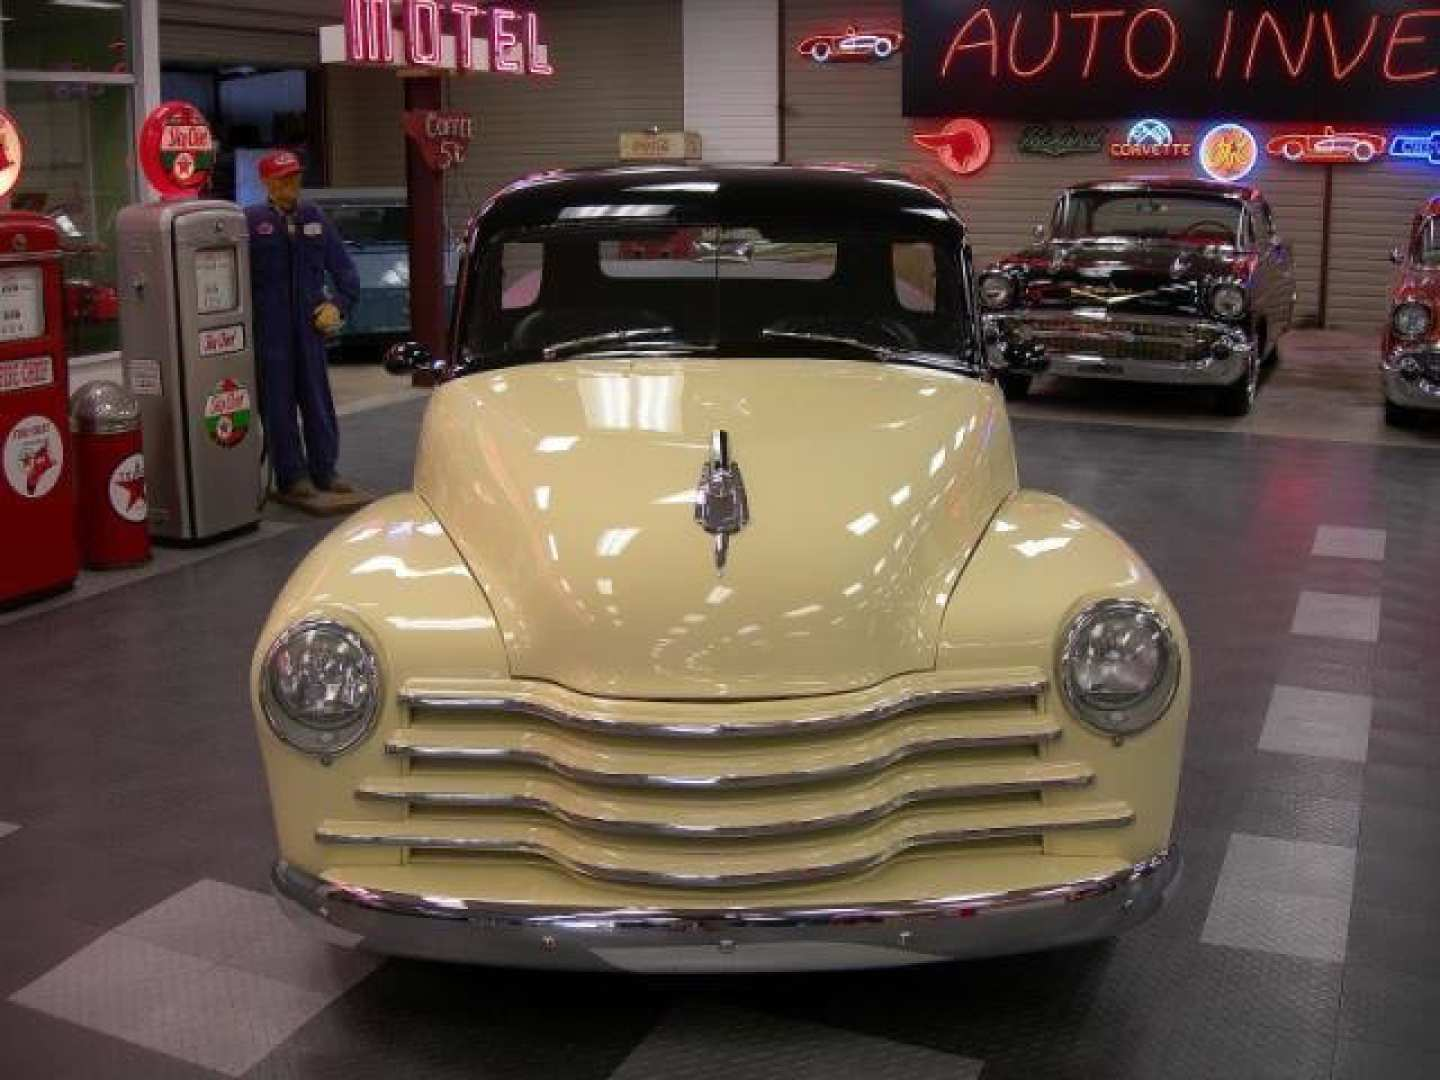 56th Image of a 1950 CHEVROLET 5 WINDOW